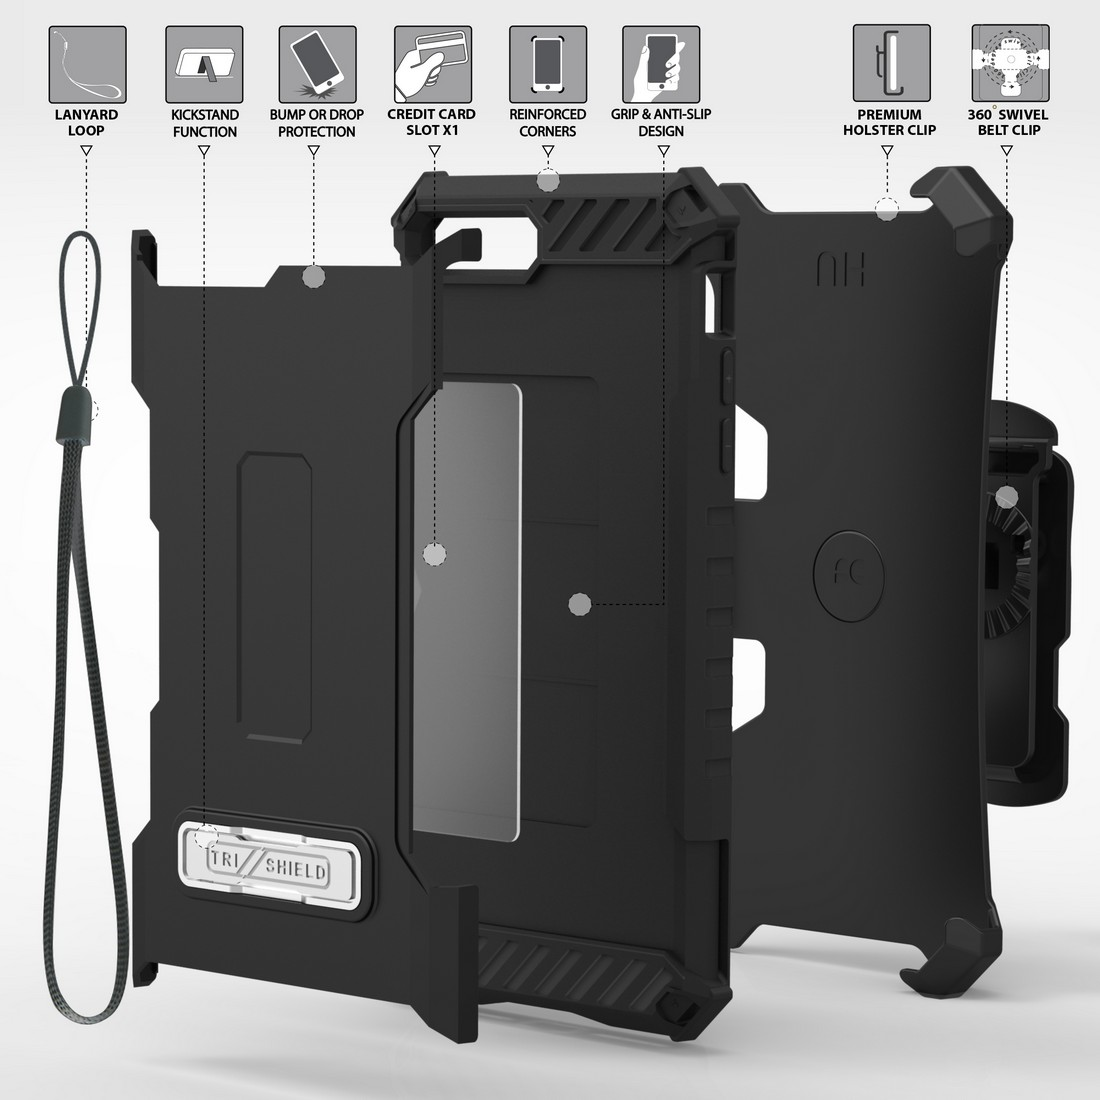 thumbnail 4 - TRI-SHIELD RUGGED CASE STAND CARD SLOT COVER + STRAP + BELT CLIP FOR iPHONE 8/7